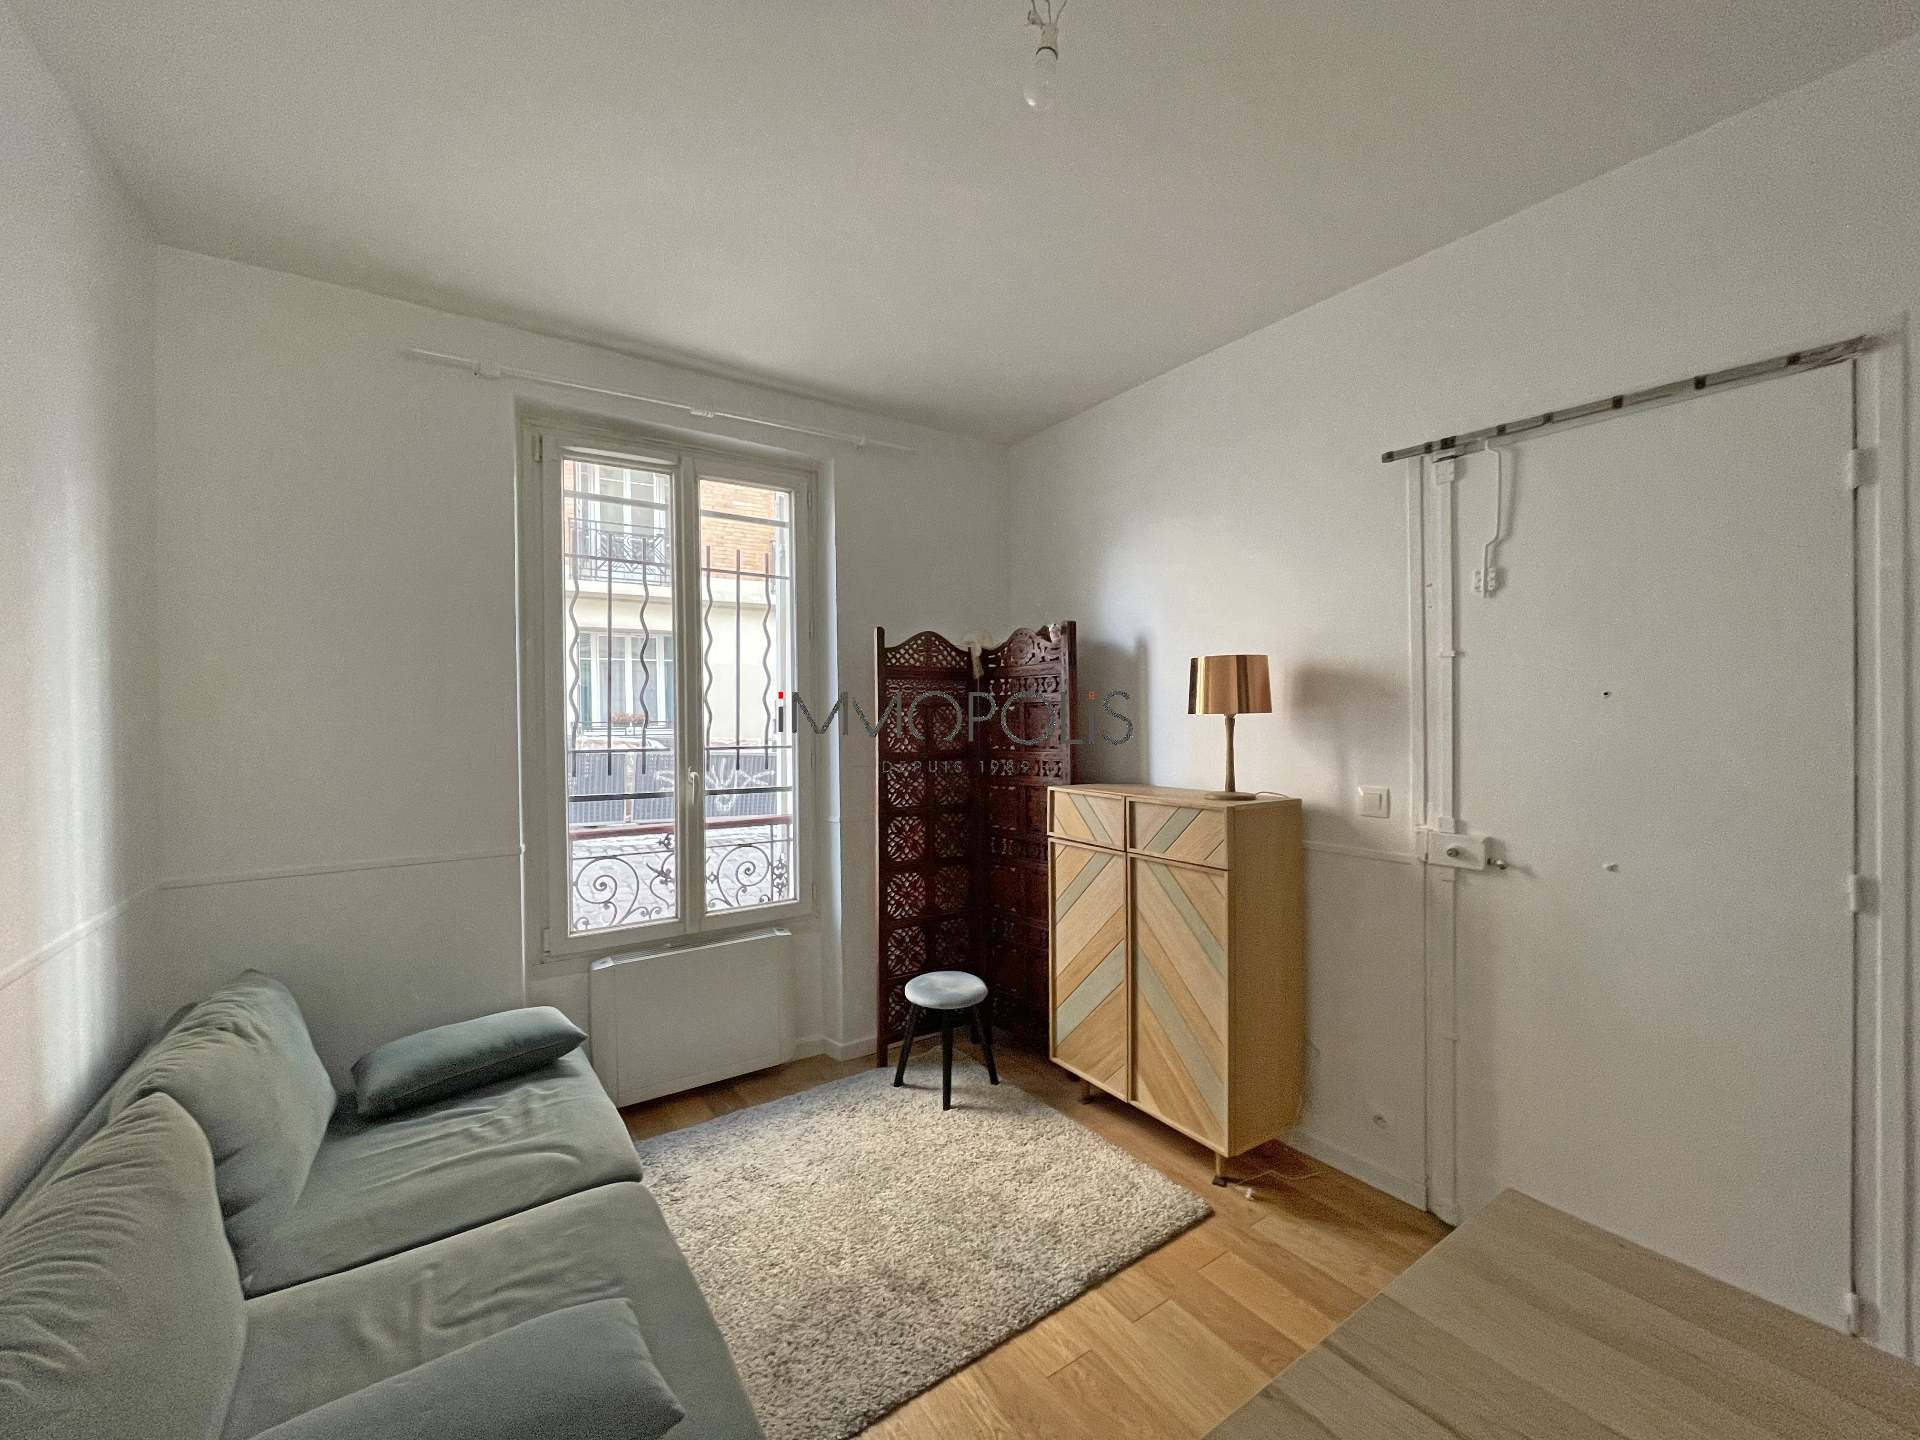 2 charming duplex rooms in Montmartre, rue Gabrielle 2